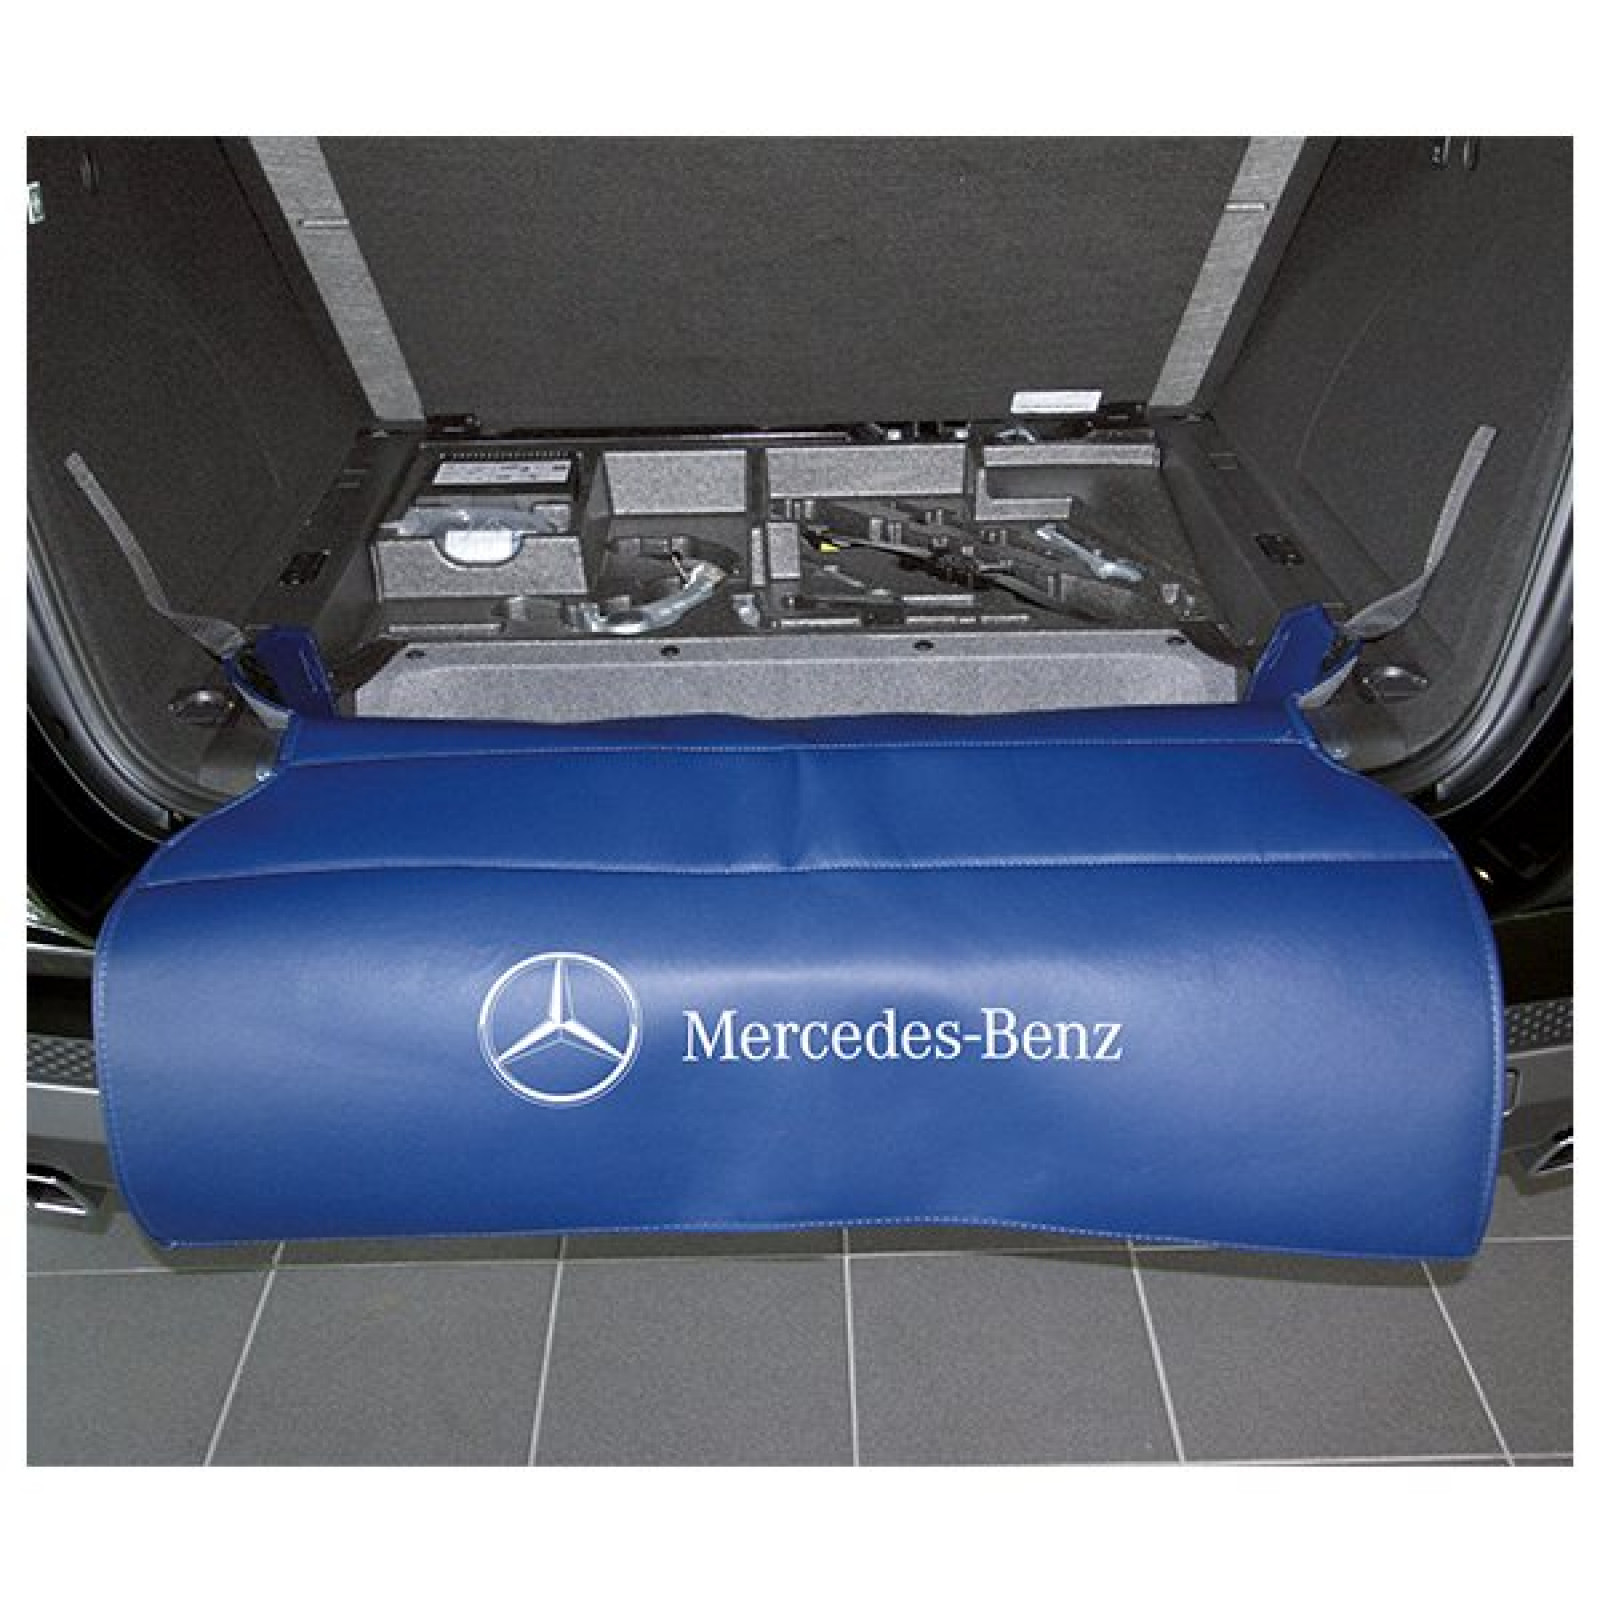 mercedes benz classic boot entry plate protective cover. Black Bedroom Furniture Sets. Home Design Ideas